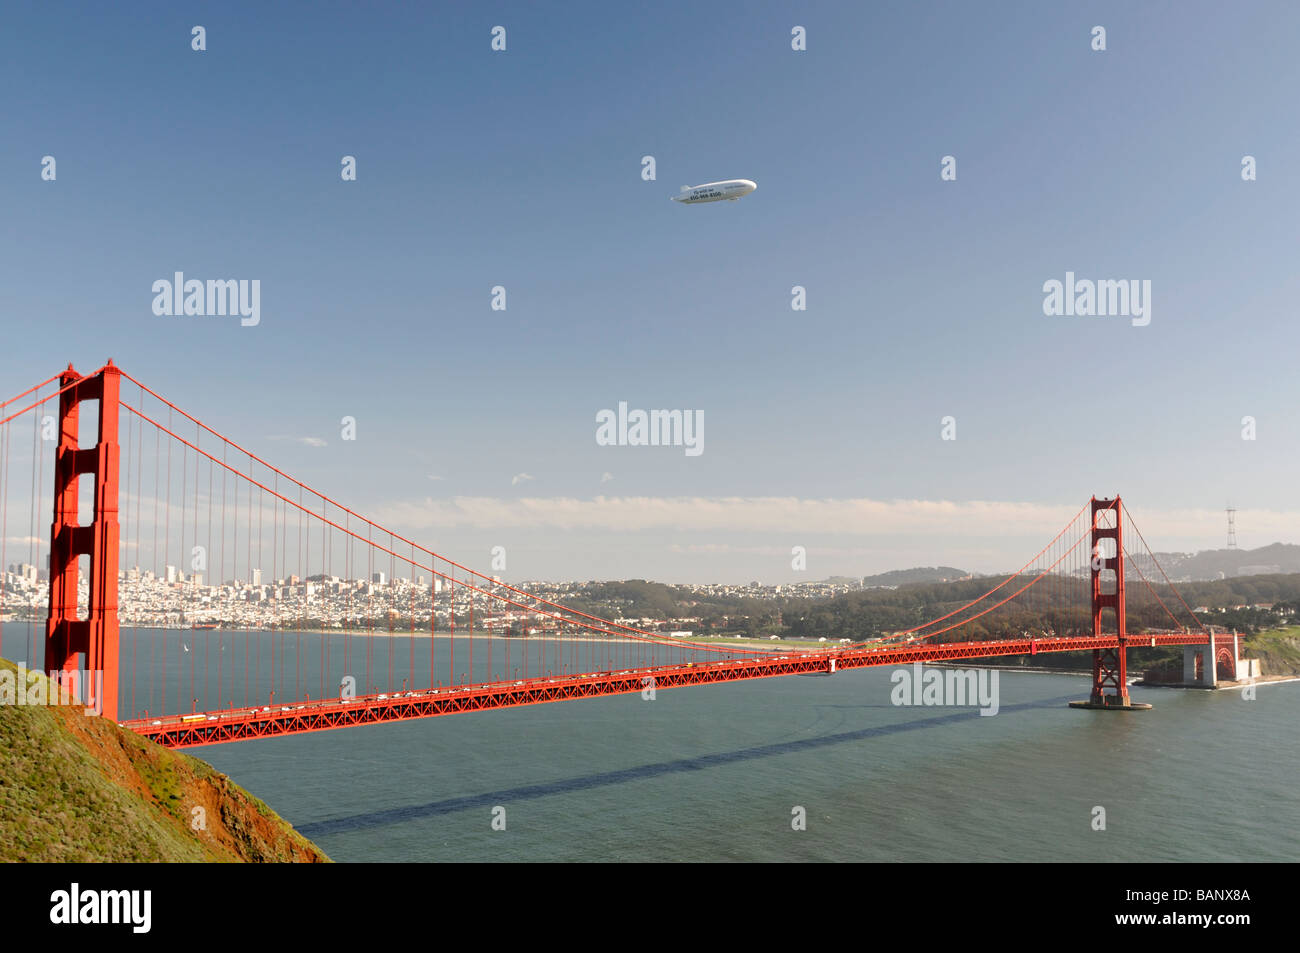 The golden gate bridge san francisco with an airship blimp flying sightseeing over it san francisco USA north america - Stock Image